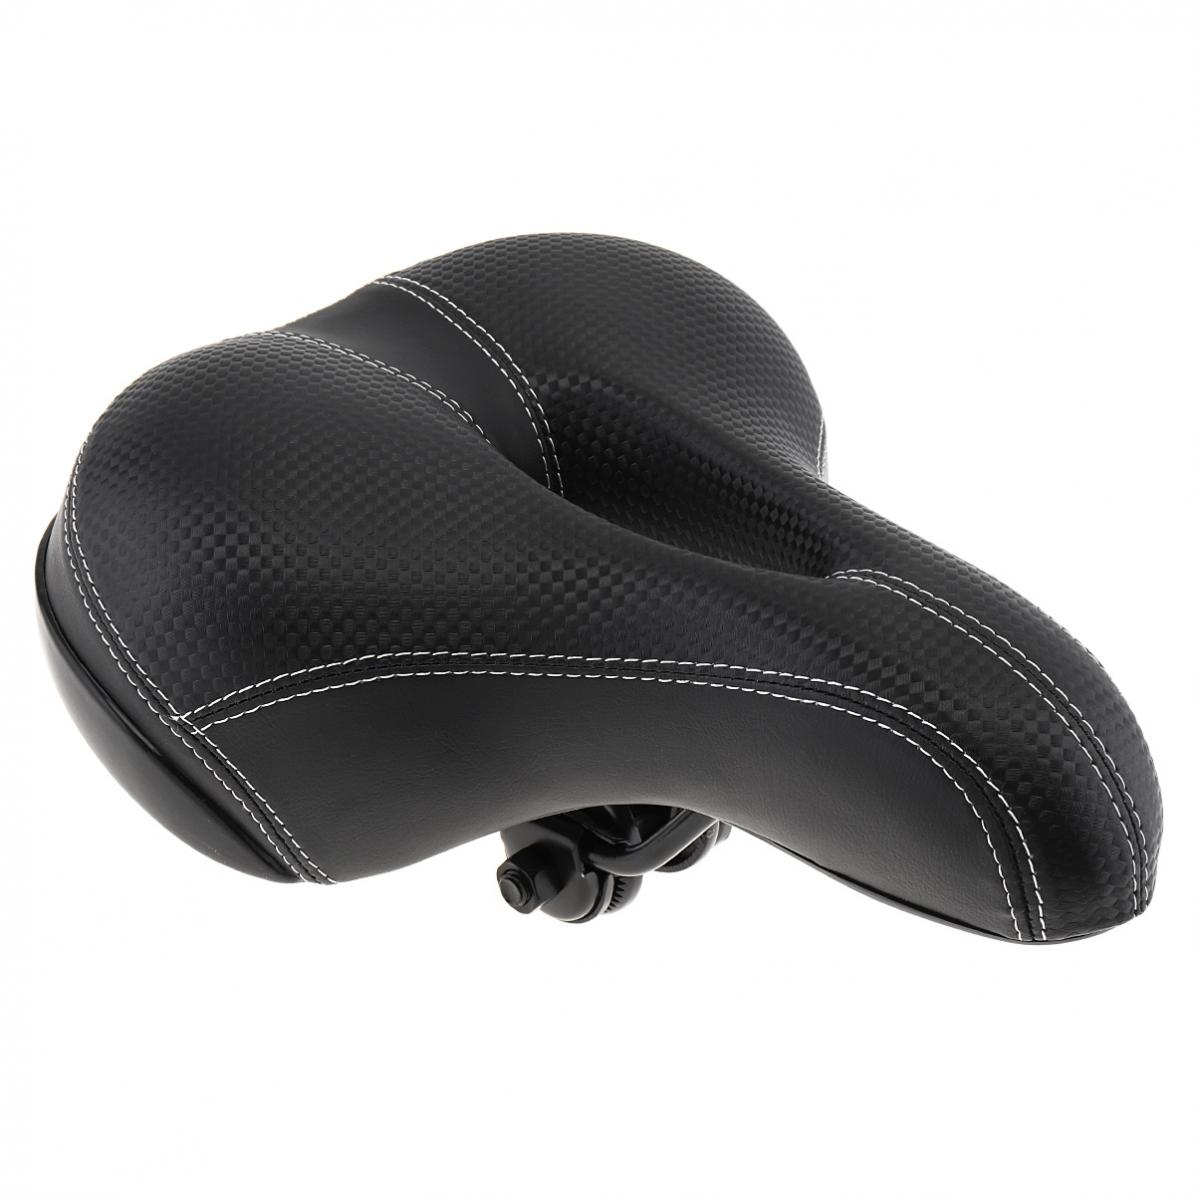 Bicycle Cycling Saddle Bike Seat Road MTB Bike Wide Soft Pad Comfort Cushion|Bicycle Saddle| |  - title=